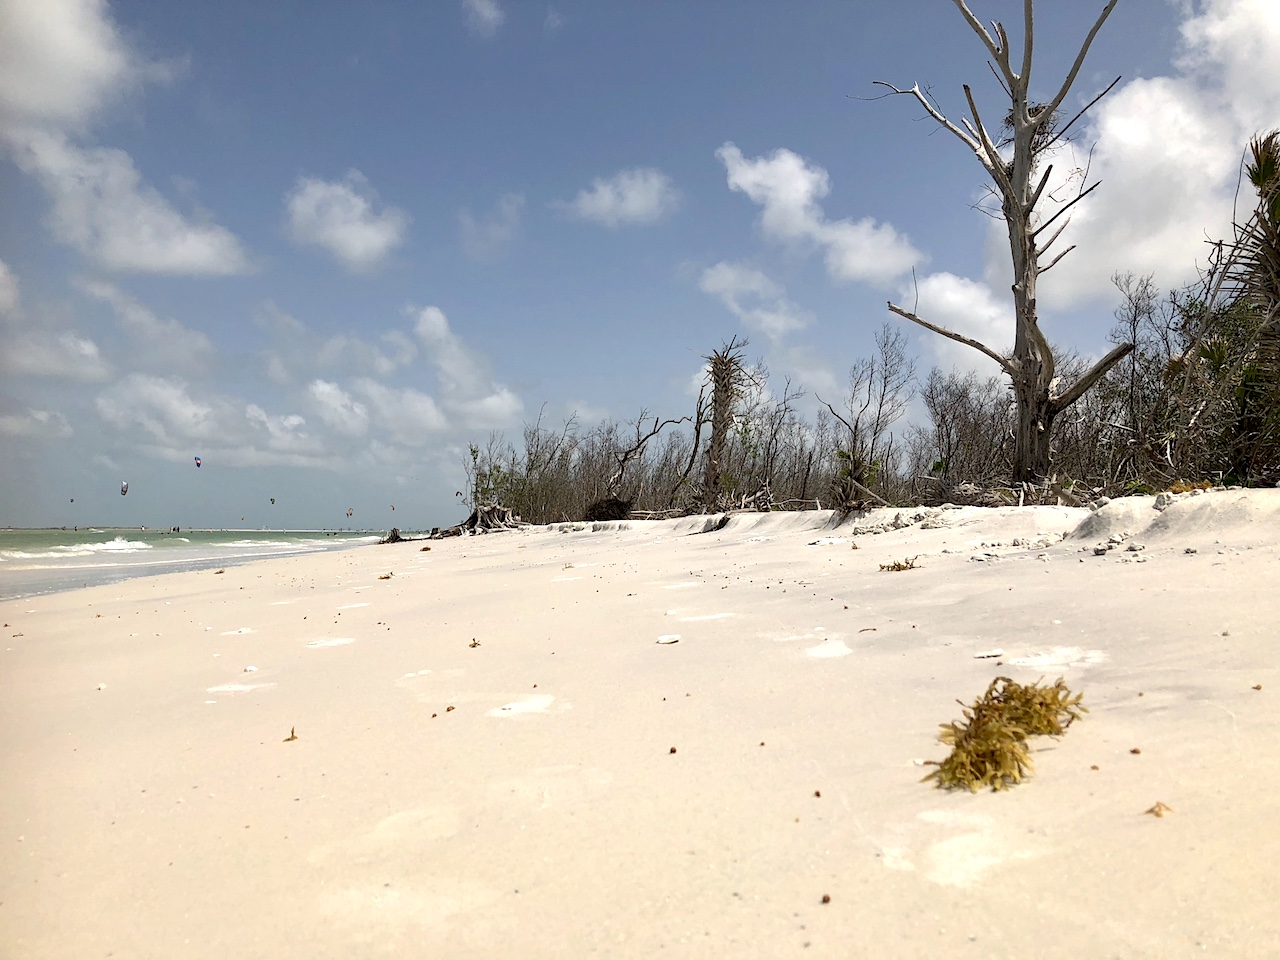 Fort de Soto is the perfect day trip from Orlando